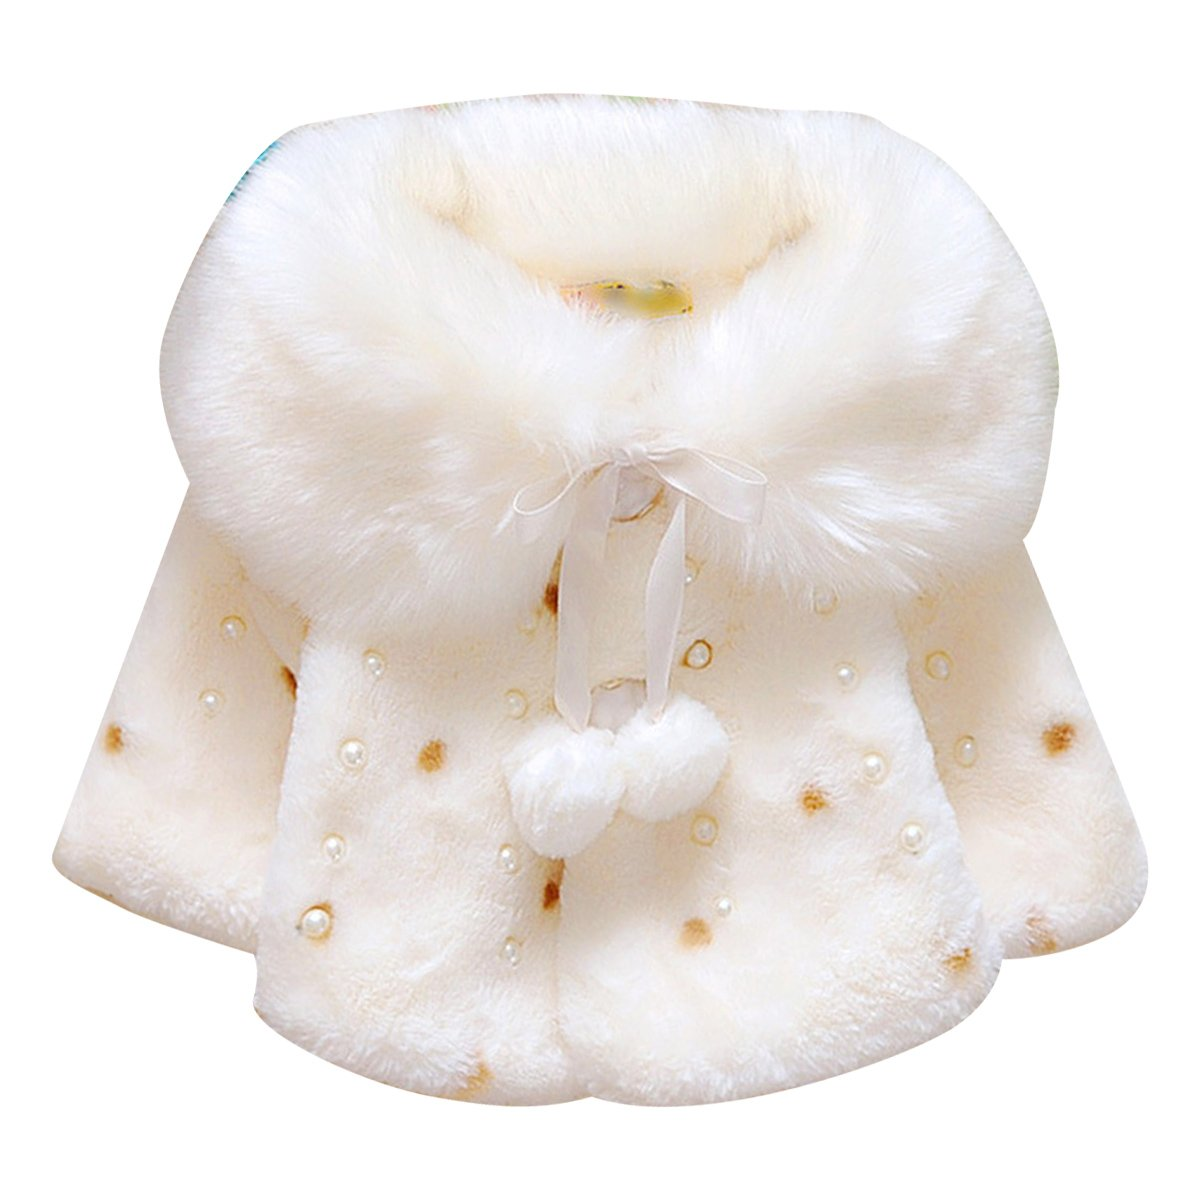 puseky Princess Baby Girls Winter Warm Pearl Cloak Cape Coat Overcoat Thick Clothes 0-6 Months)